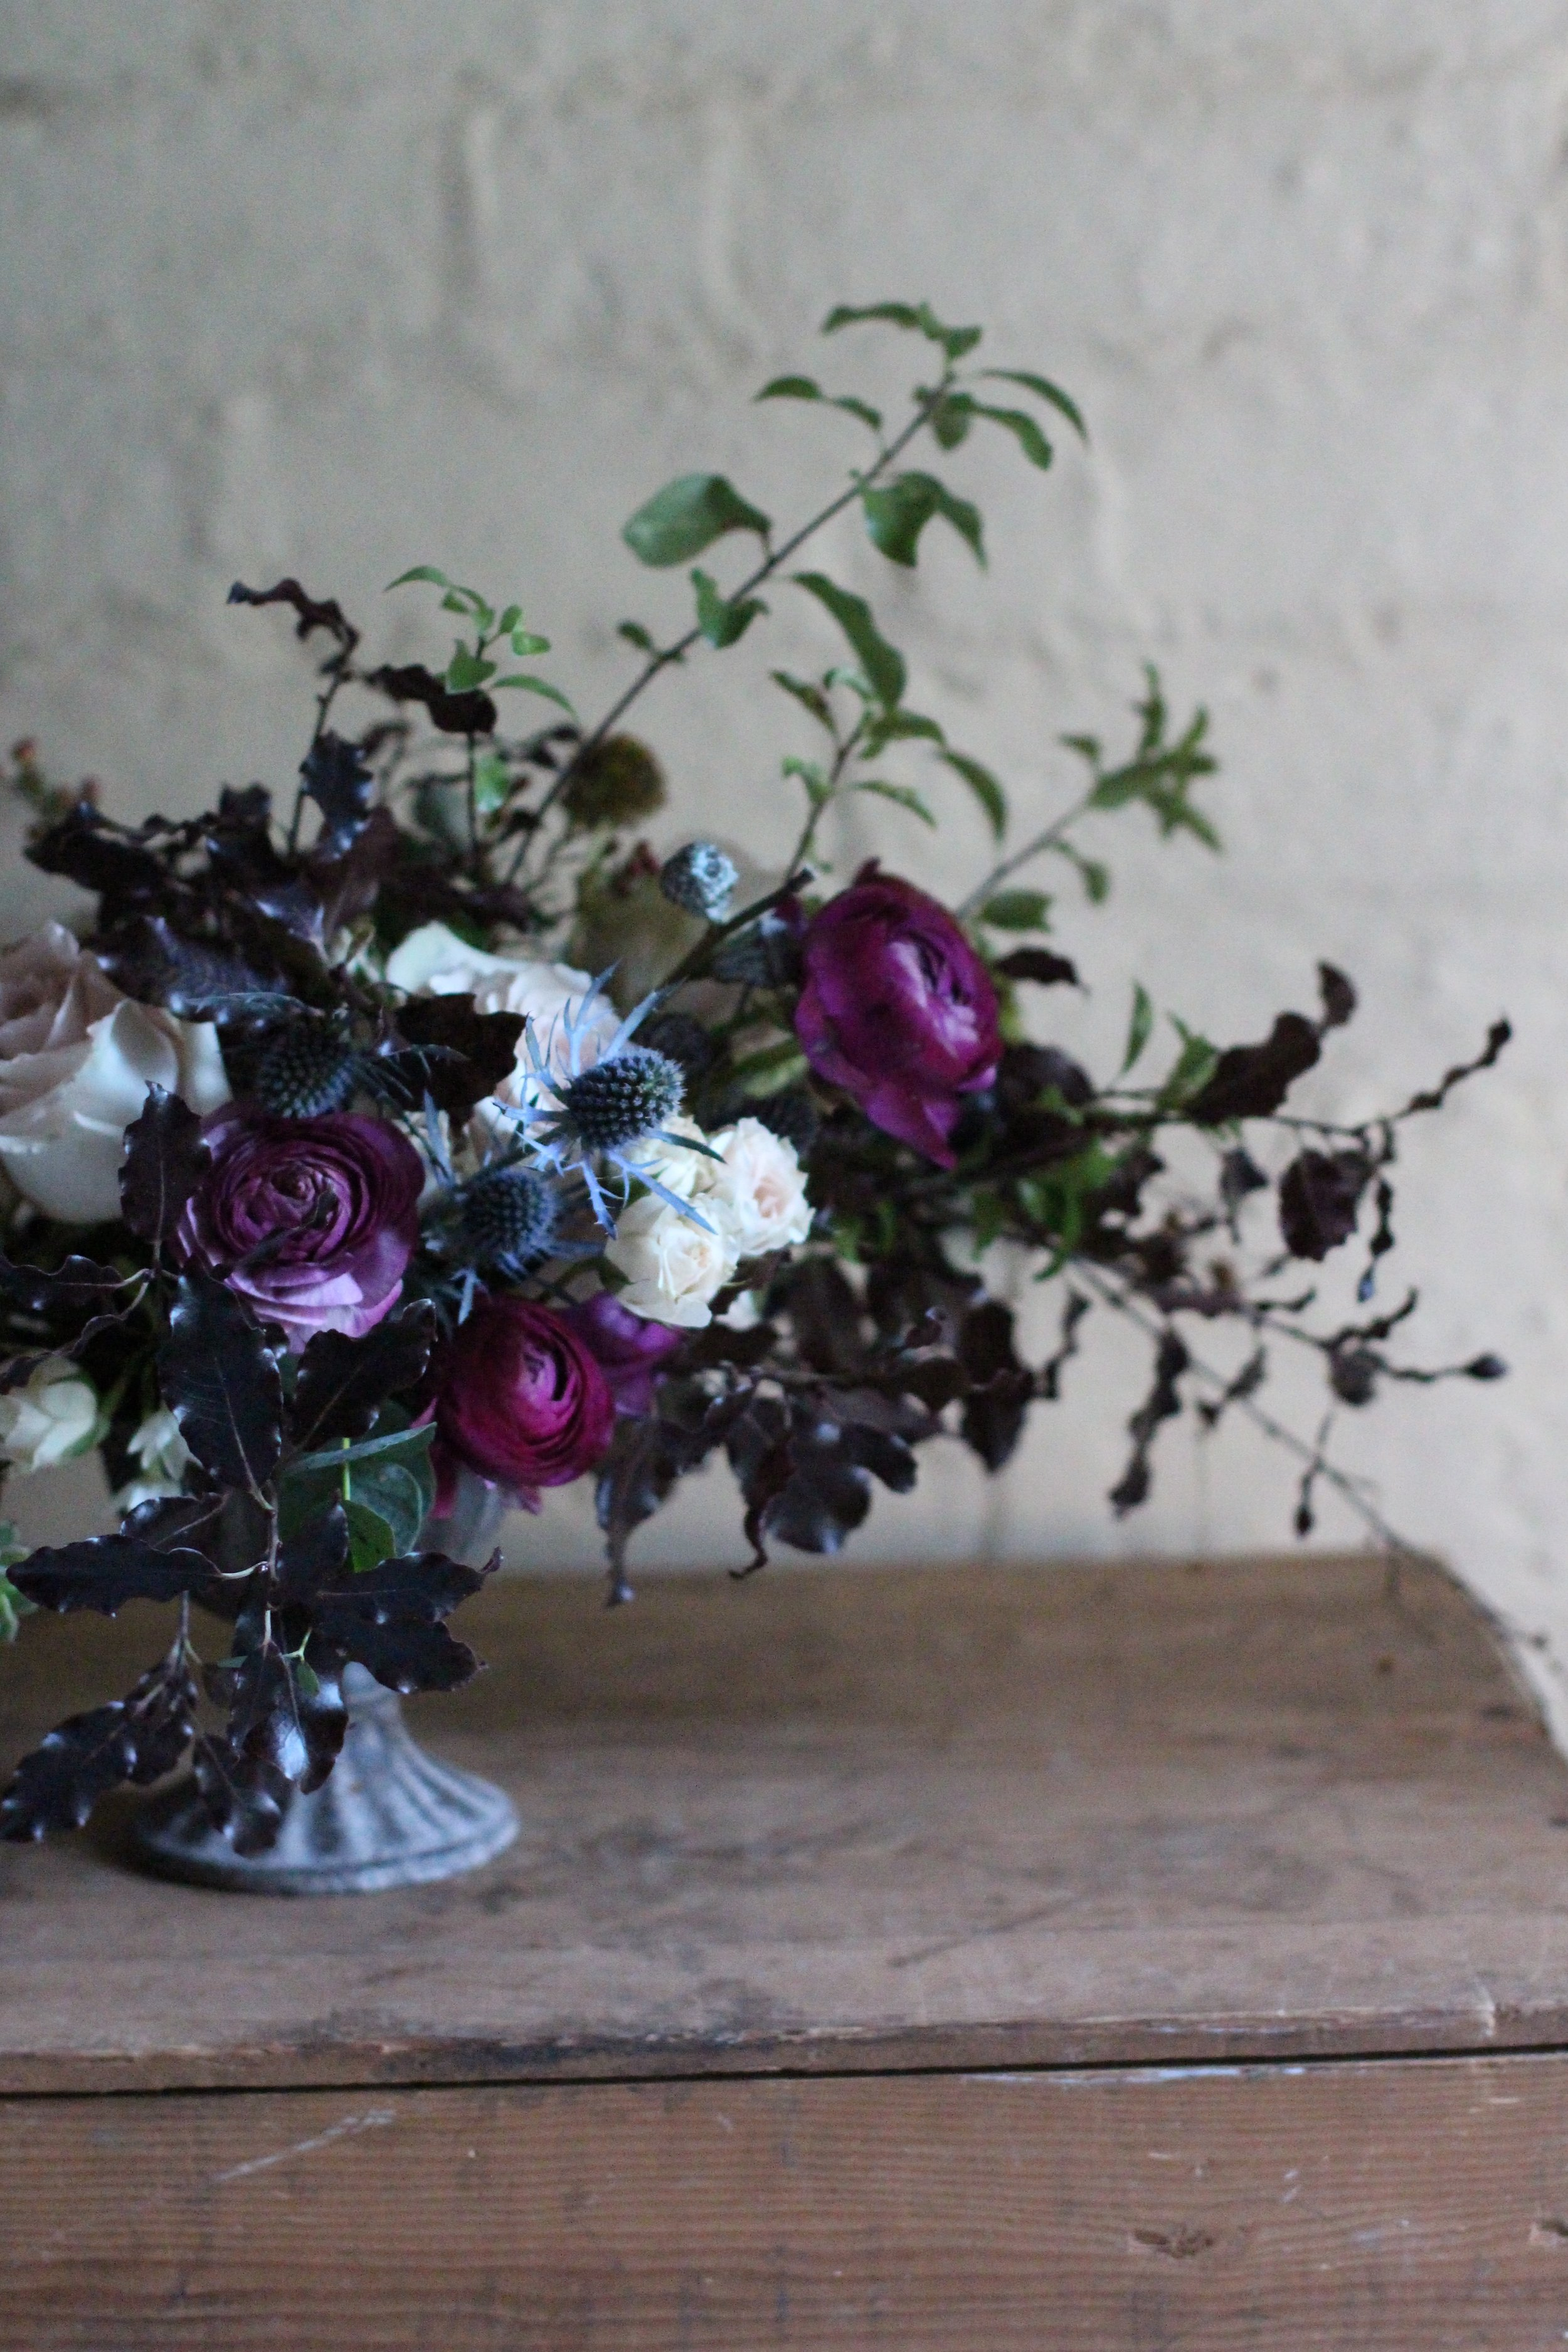 Pei's table arrangement at the Jennifer Pinder Floristry lesson floral workshop based in Kent